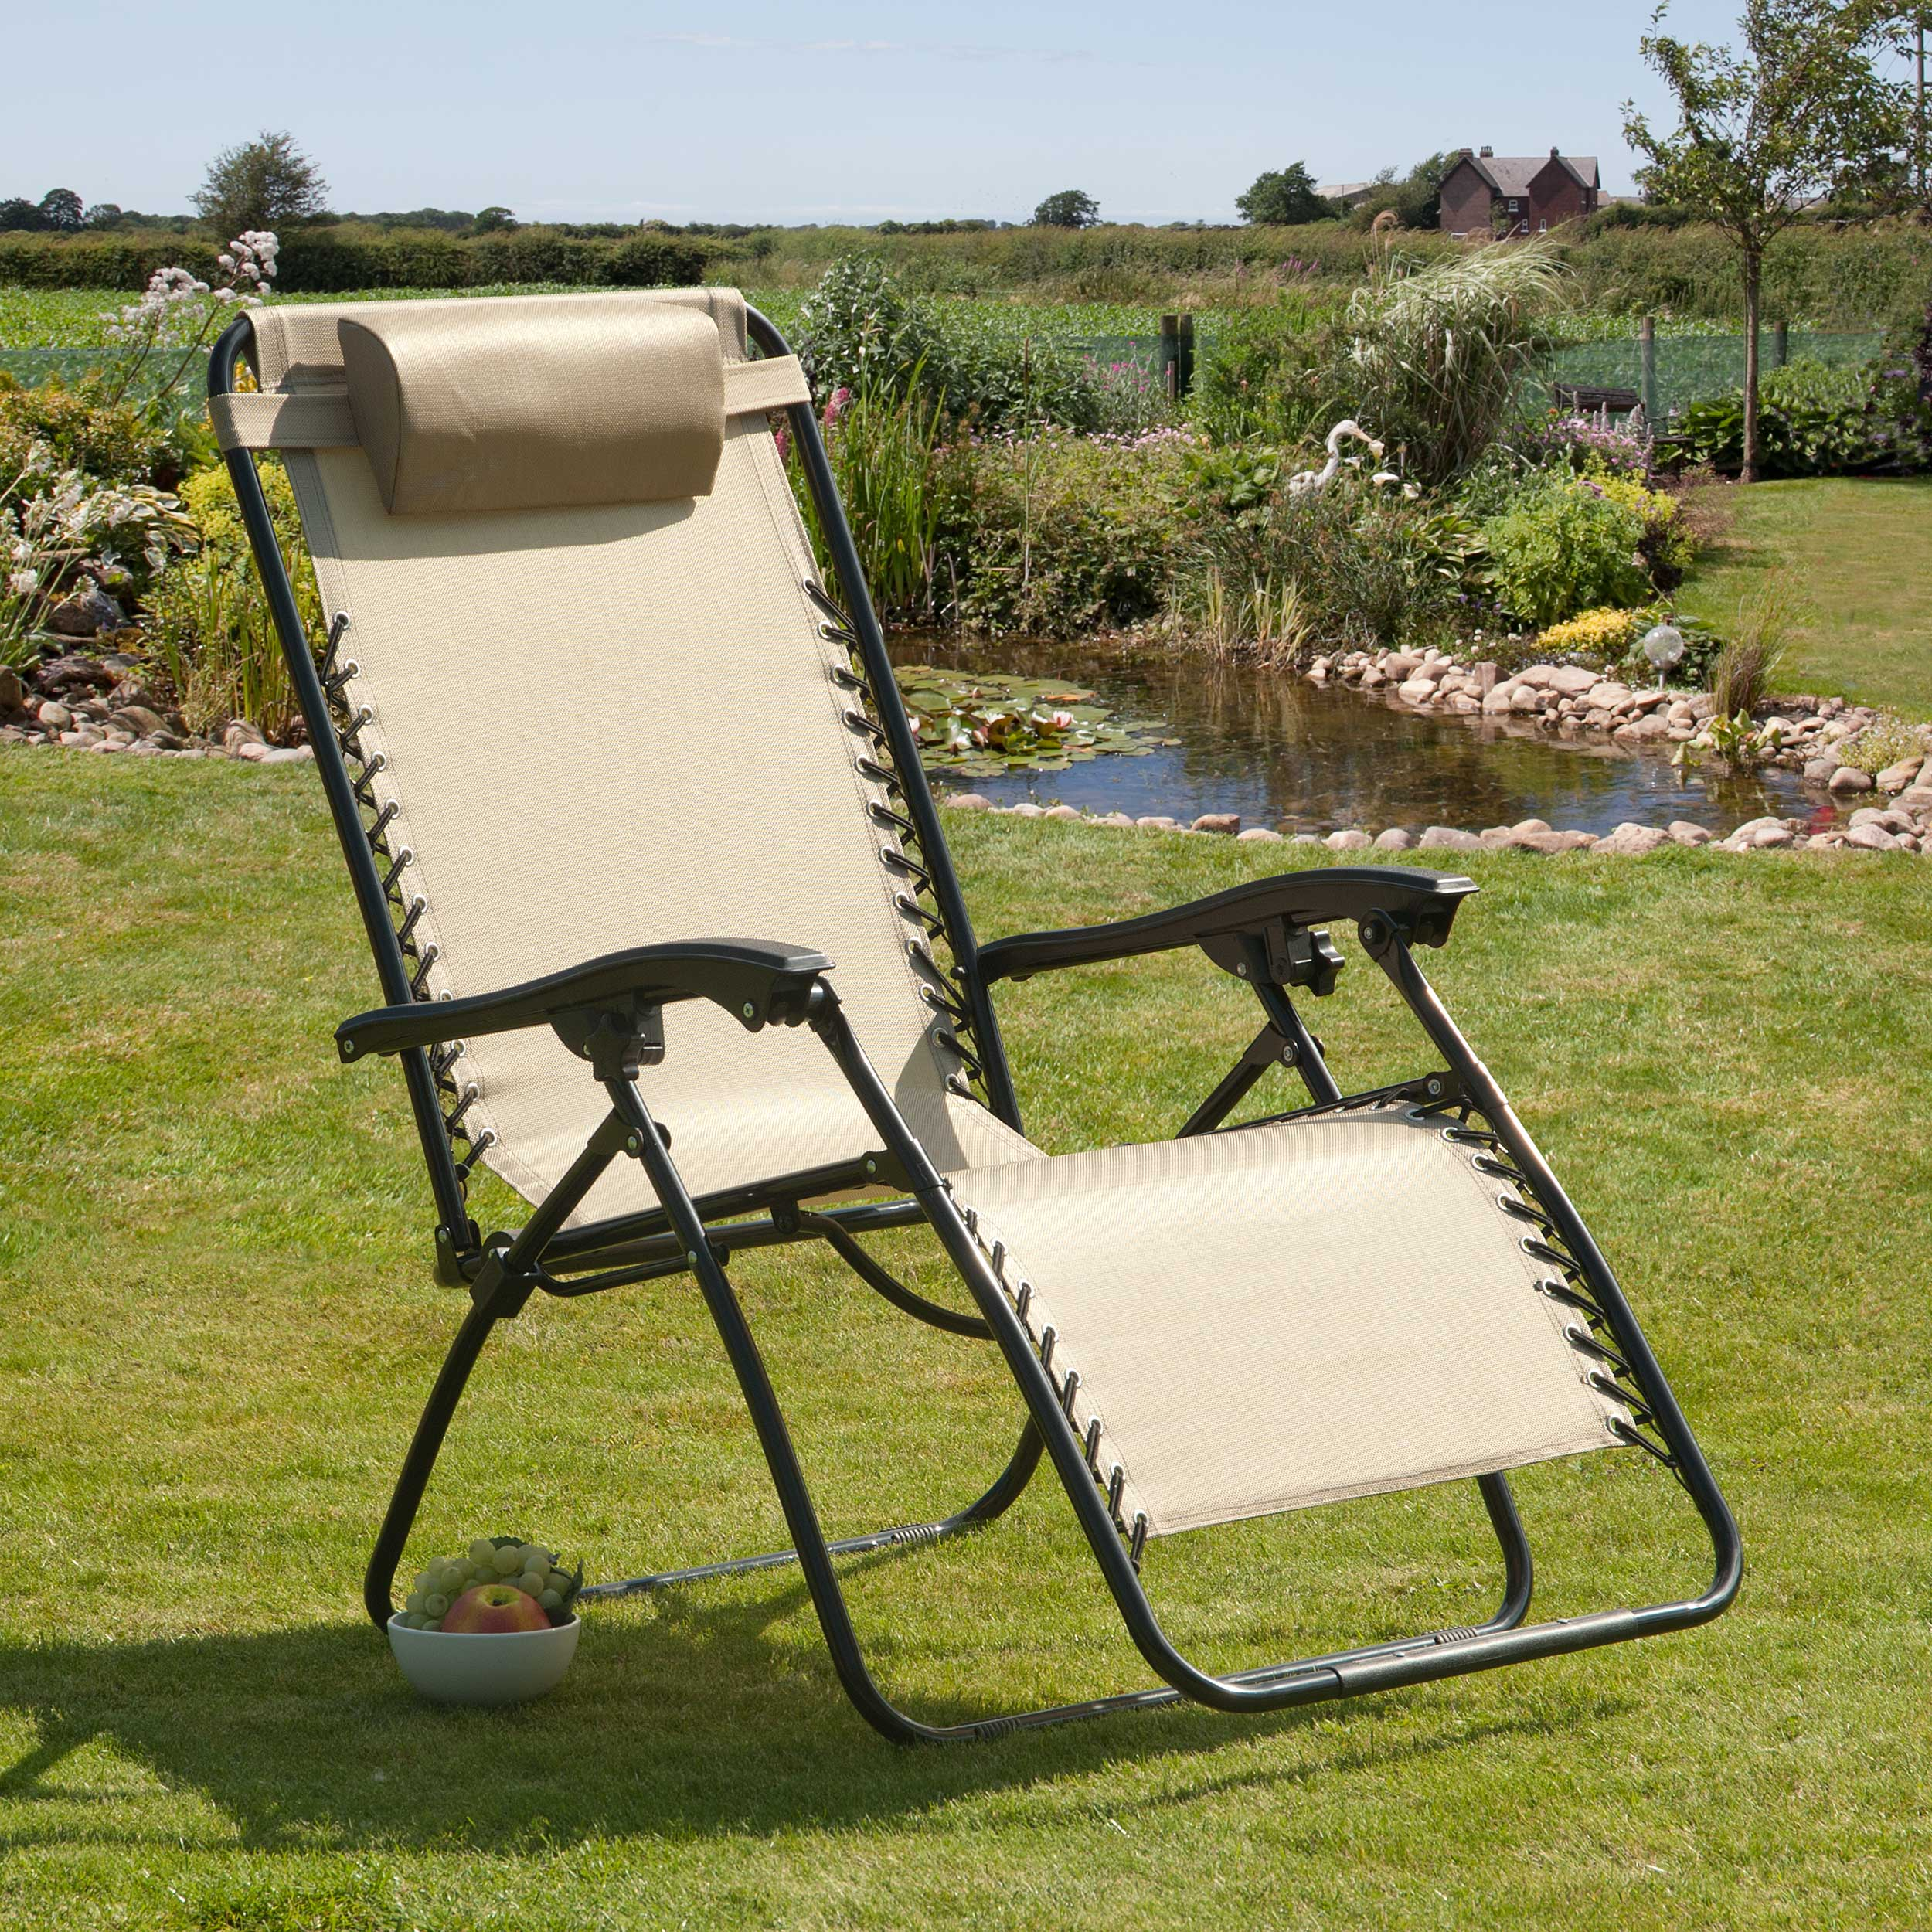 Suntime Large Deluxe Royale Outdoor Gravity Chair